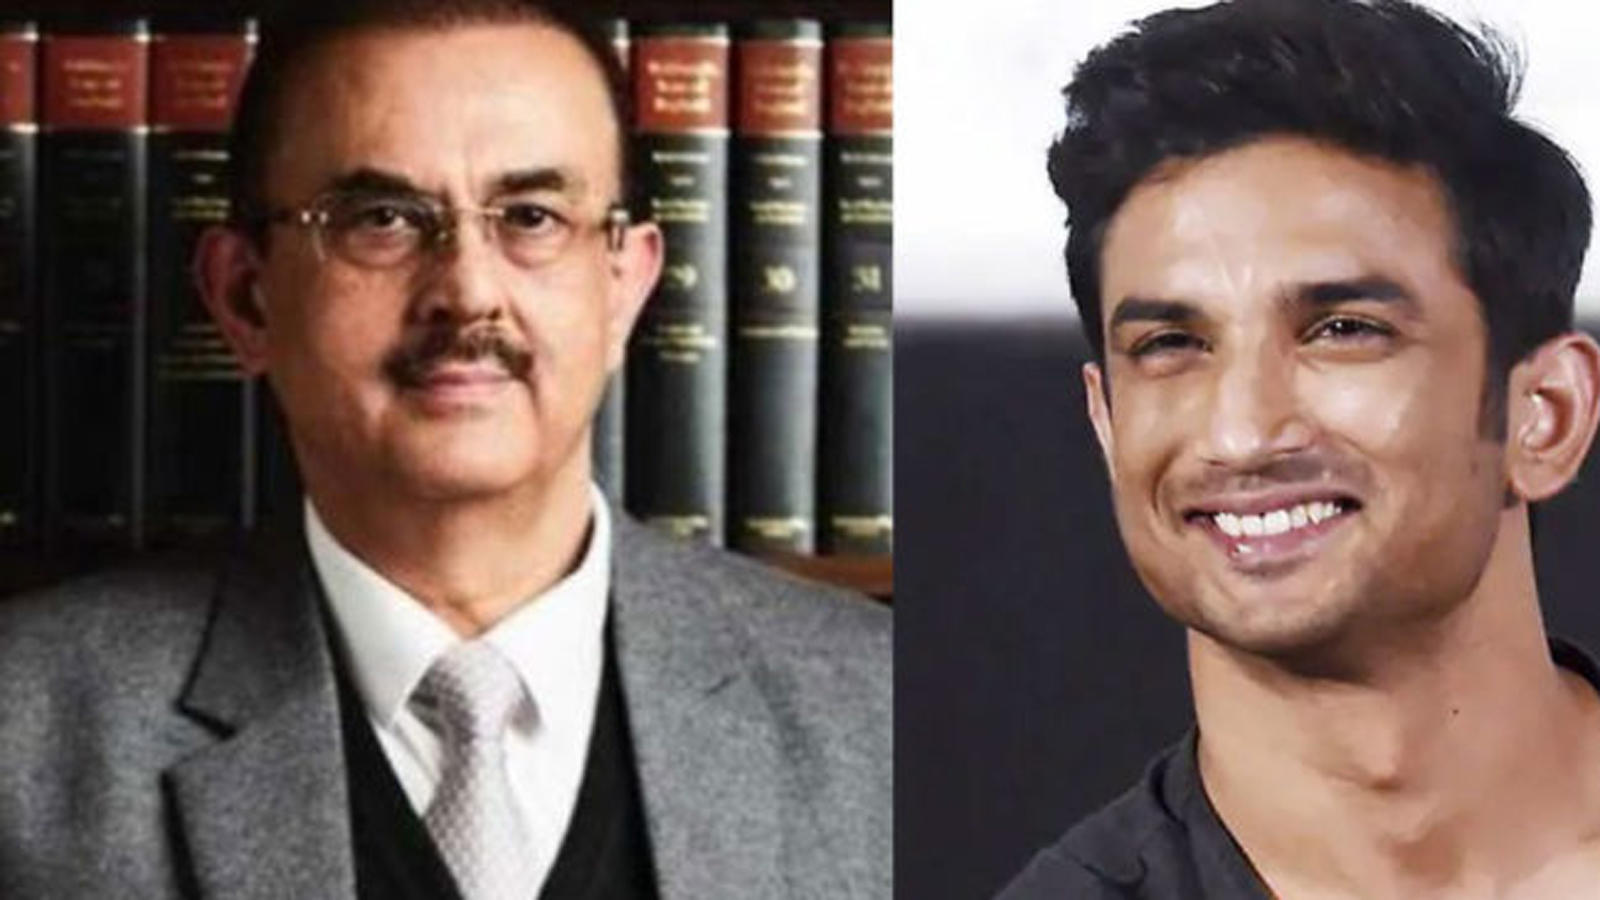 mumbai-police-doesnt-want-the-truth-to-come-out-alleges-sushant-singh-rajputs-family-lawyer